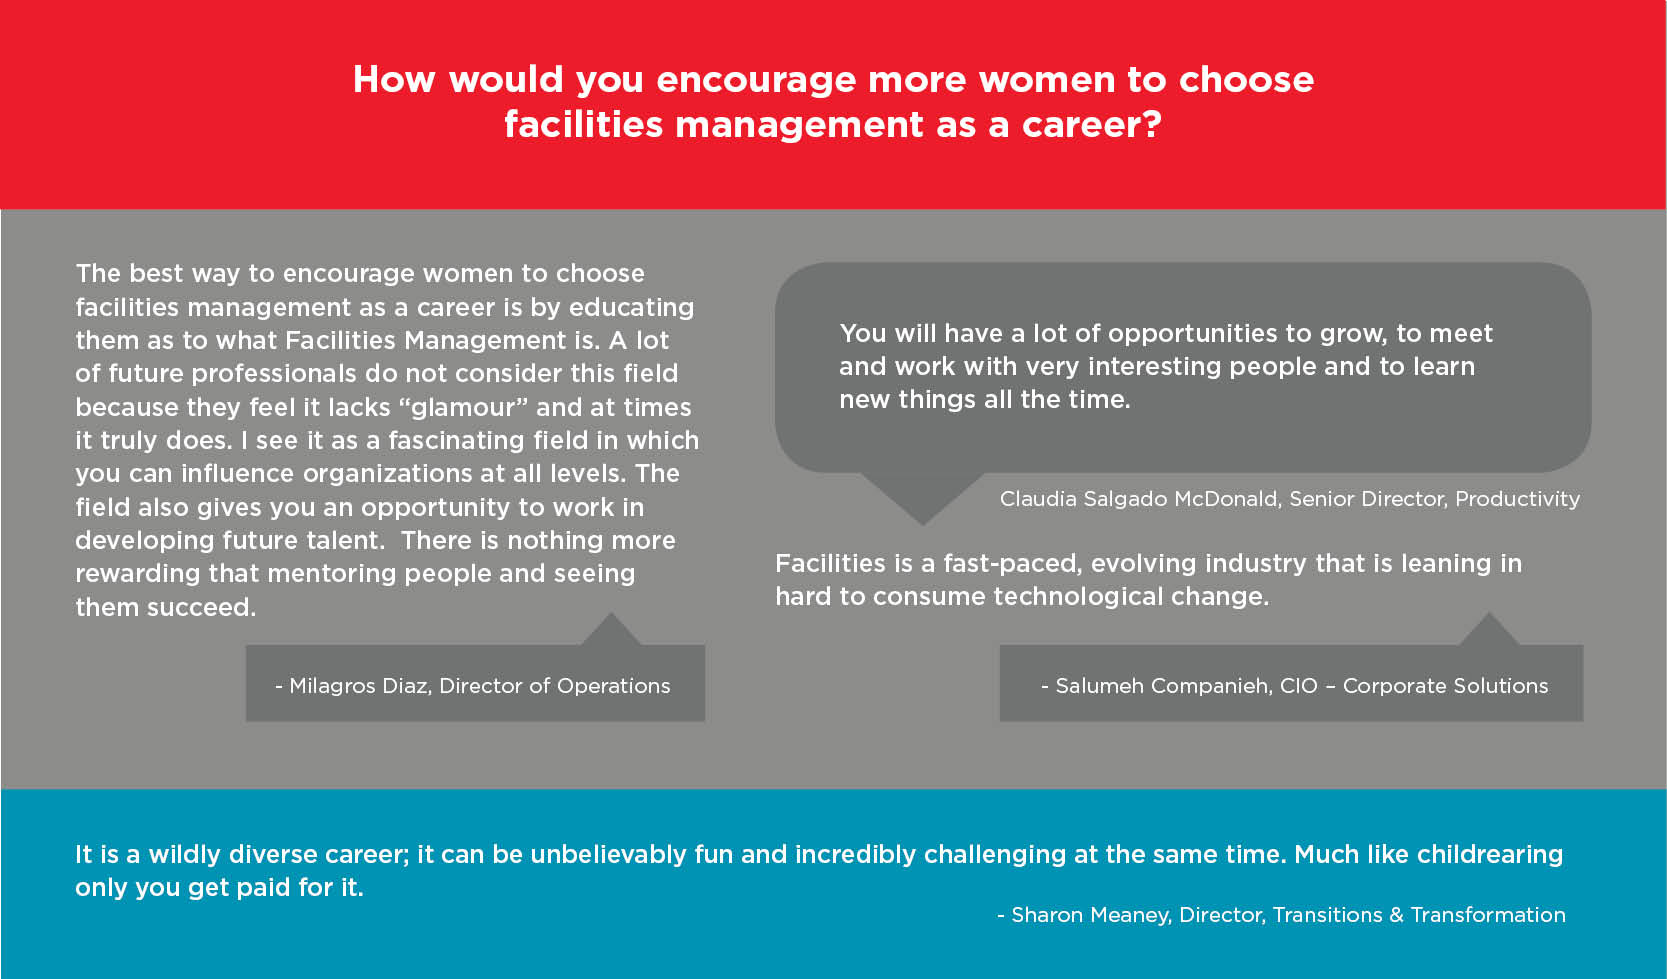 C&W encourages women to pursue a career in the facilities management industry.